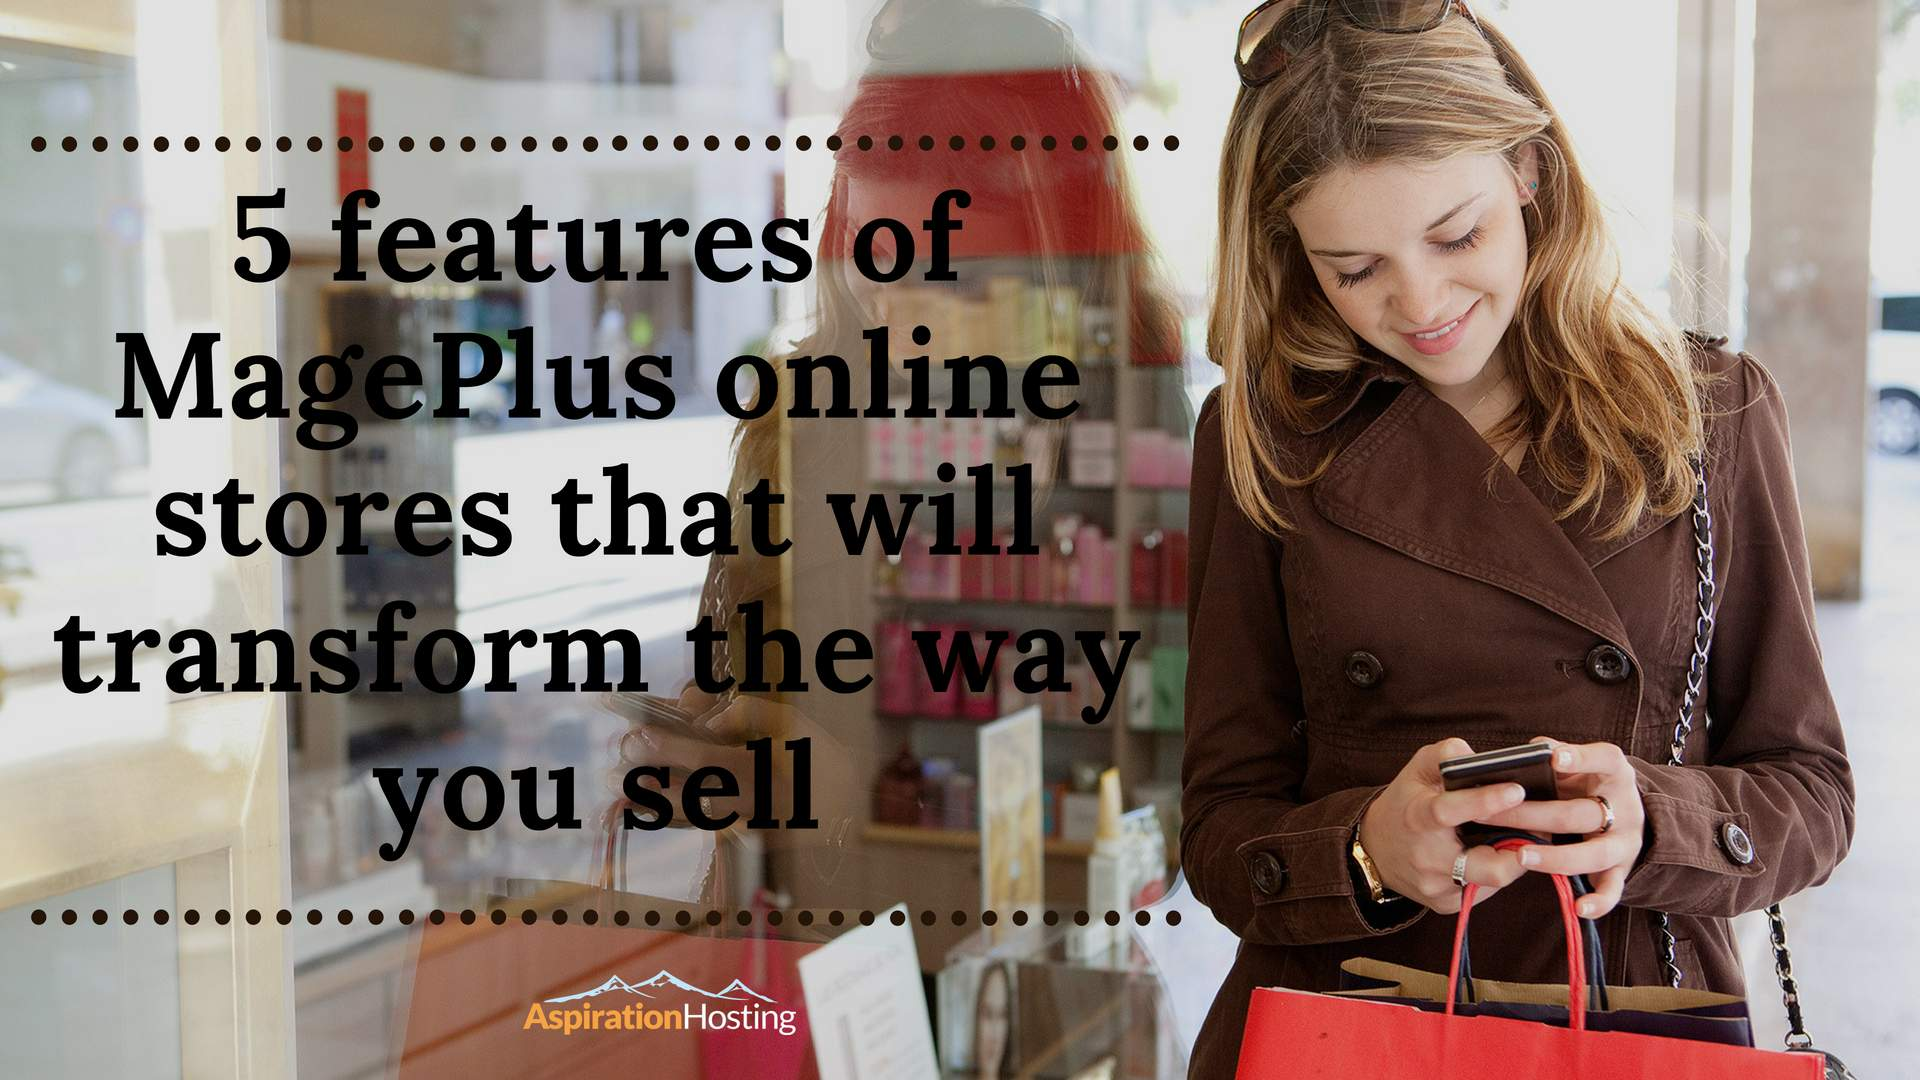 5 powerful features of MagePlus online stores that will transform the way you sell forever